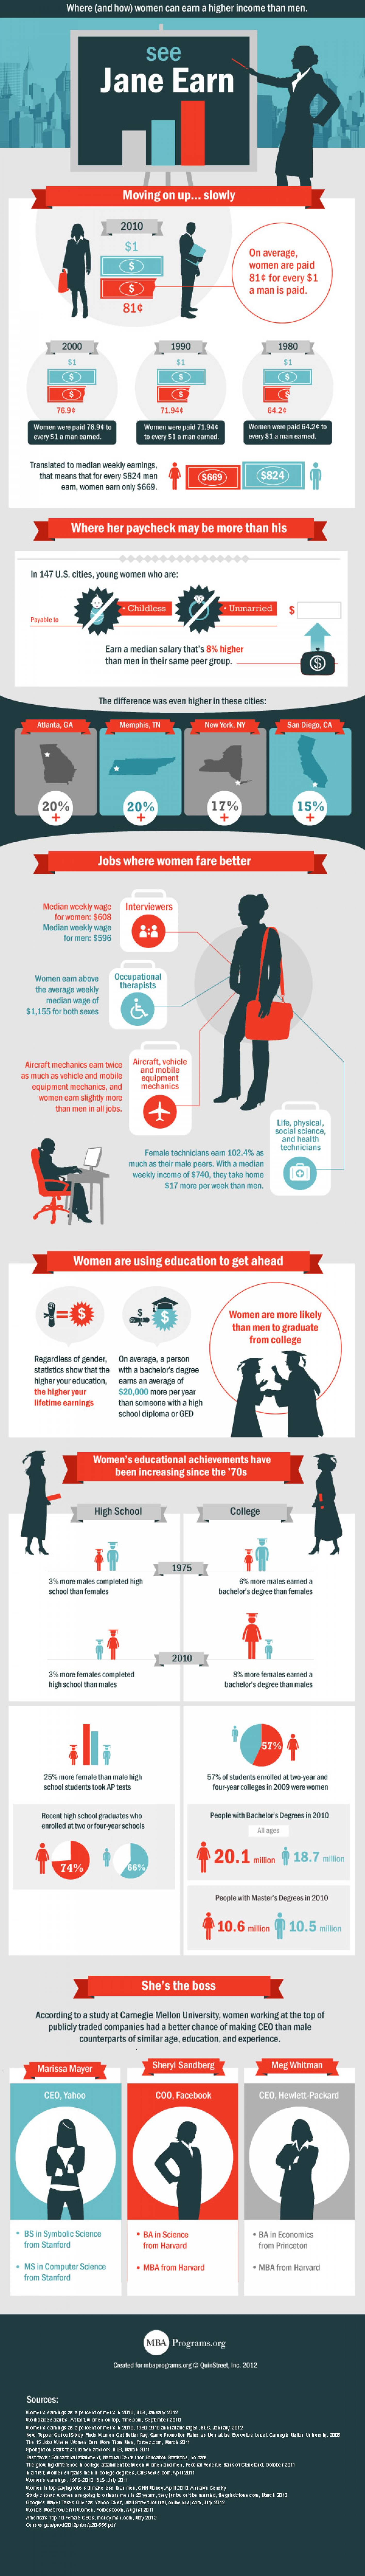 See Jane Earn: Where (and How) Women Can Earn a Higher Income than Men Infographic